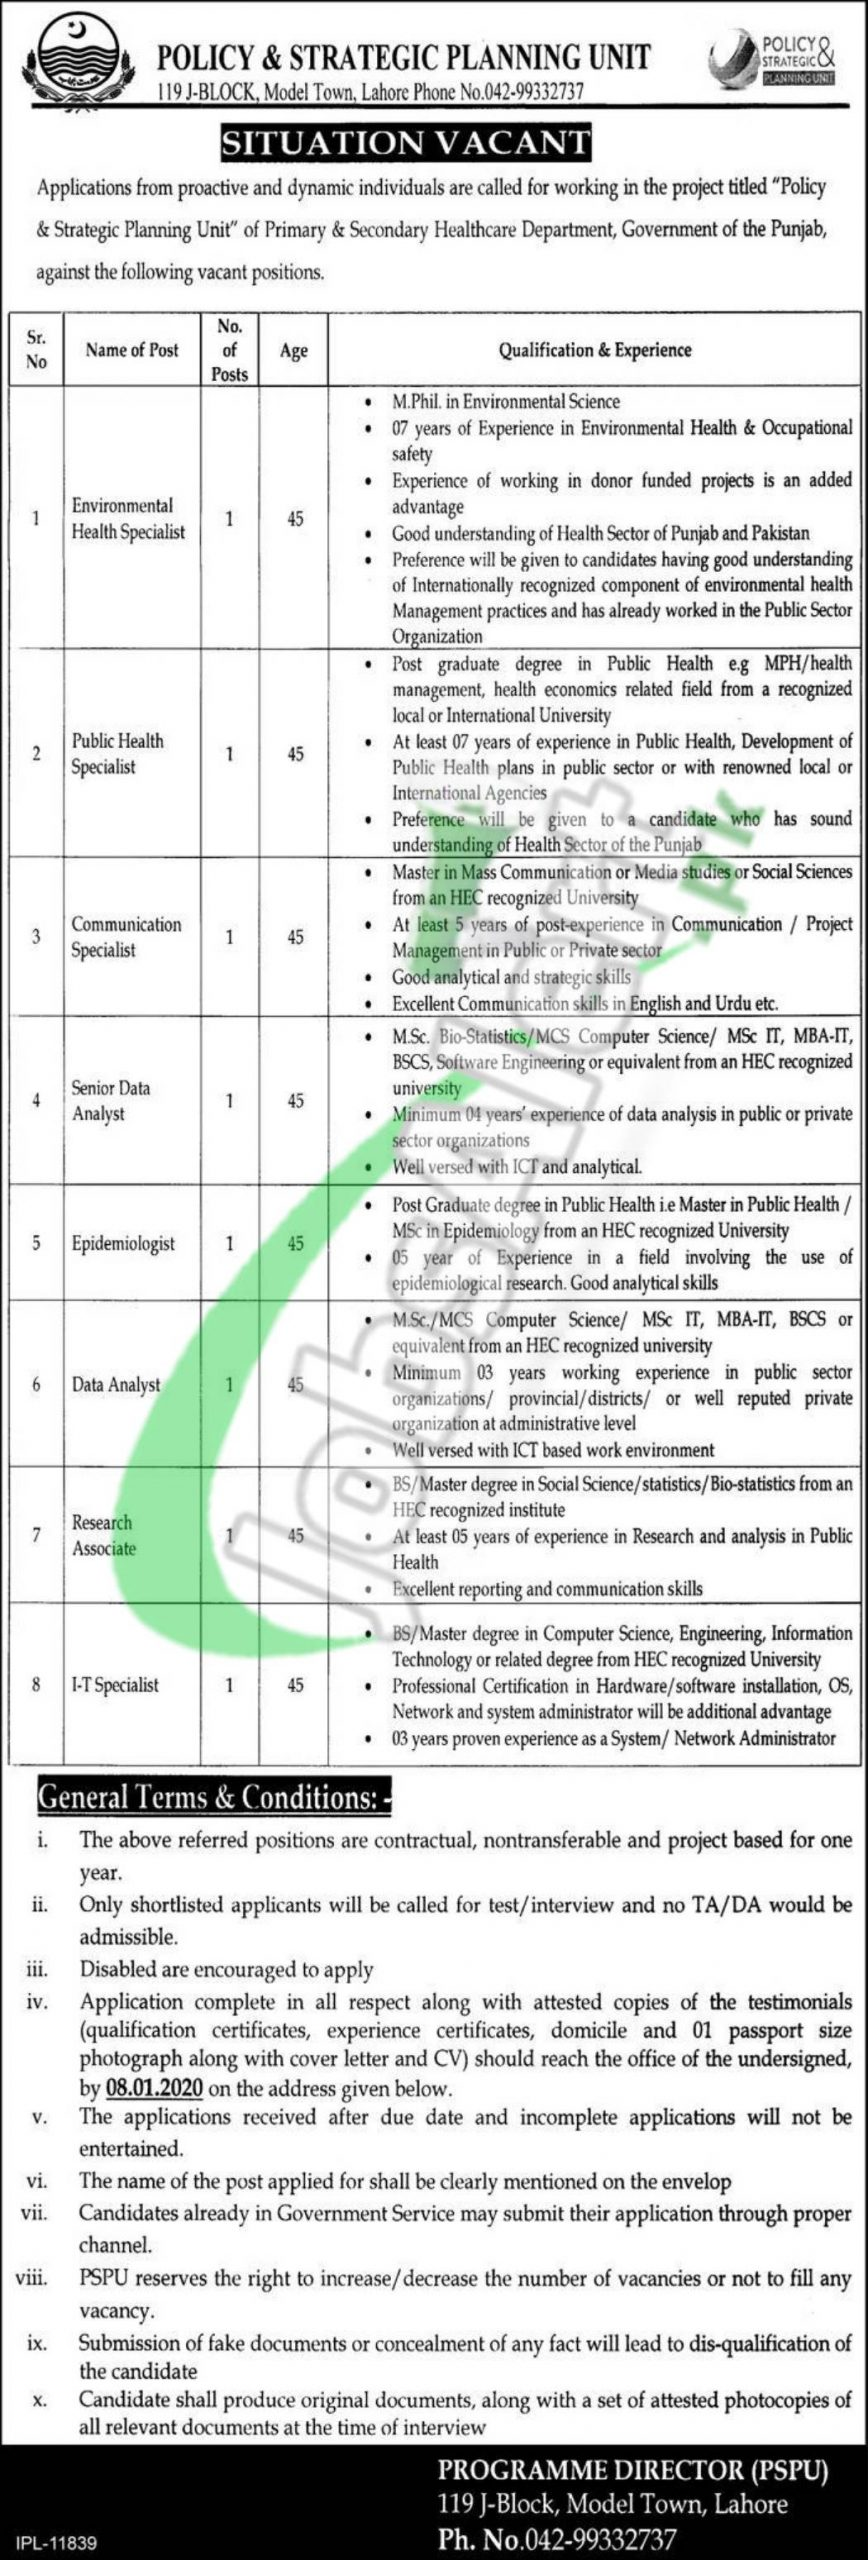 Policy & Strategic Planning Unit, Primary and Secondary Healthcare Department Punjab